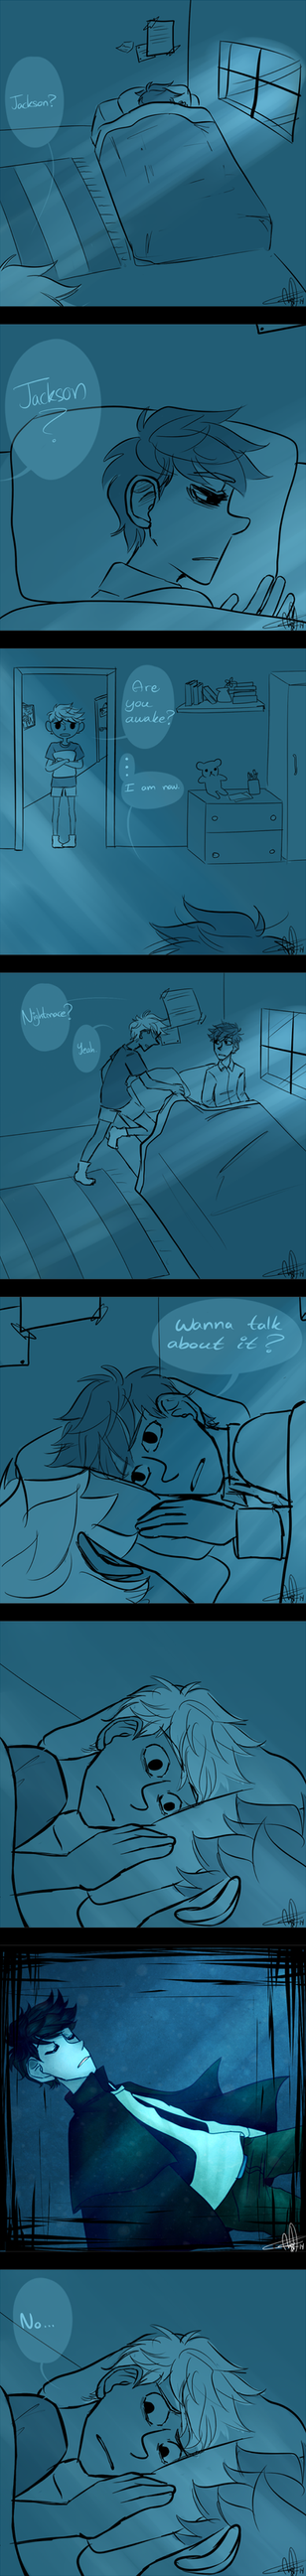 ROTG - Nightmare by W-i-s-s-l-e-r